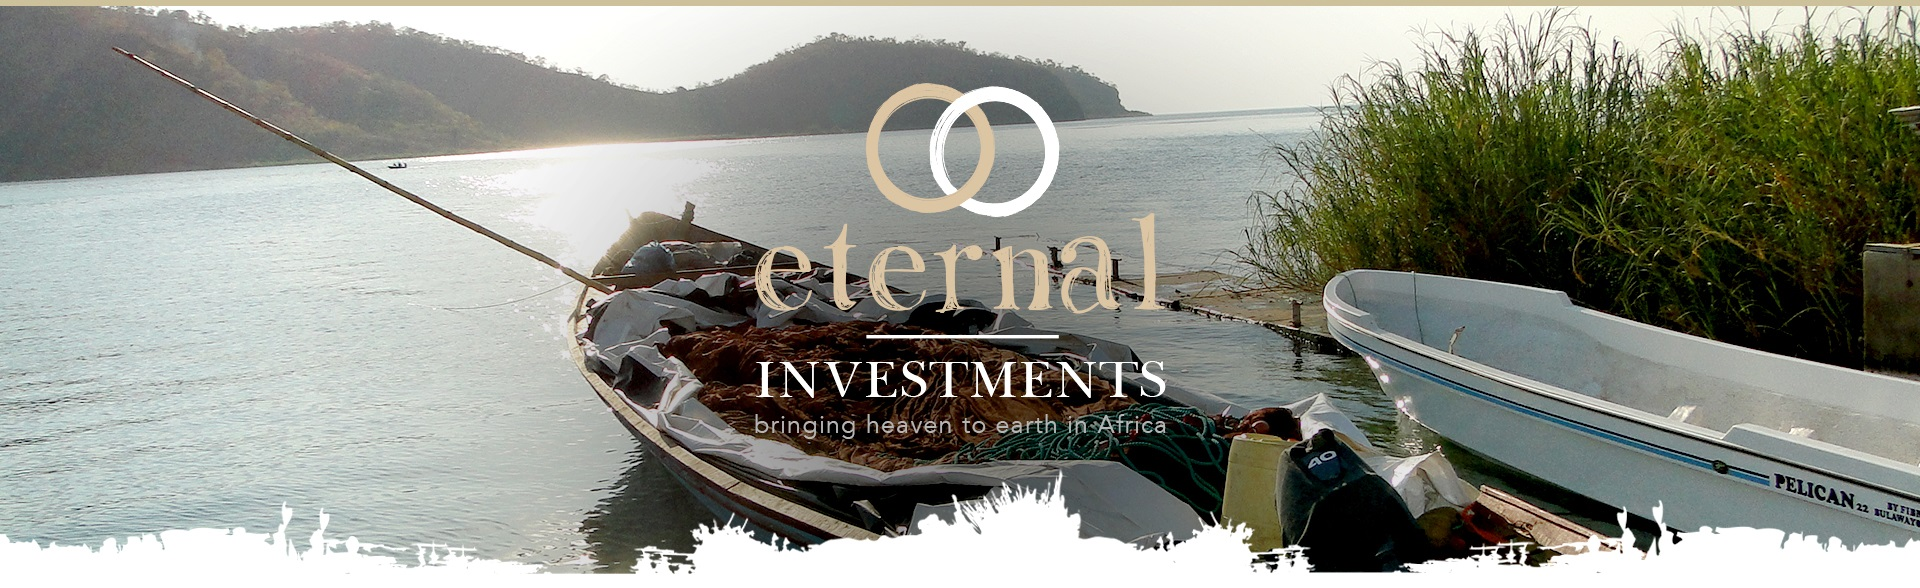 eternal-investment-investment-stats-banner.jpg